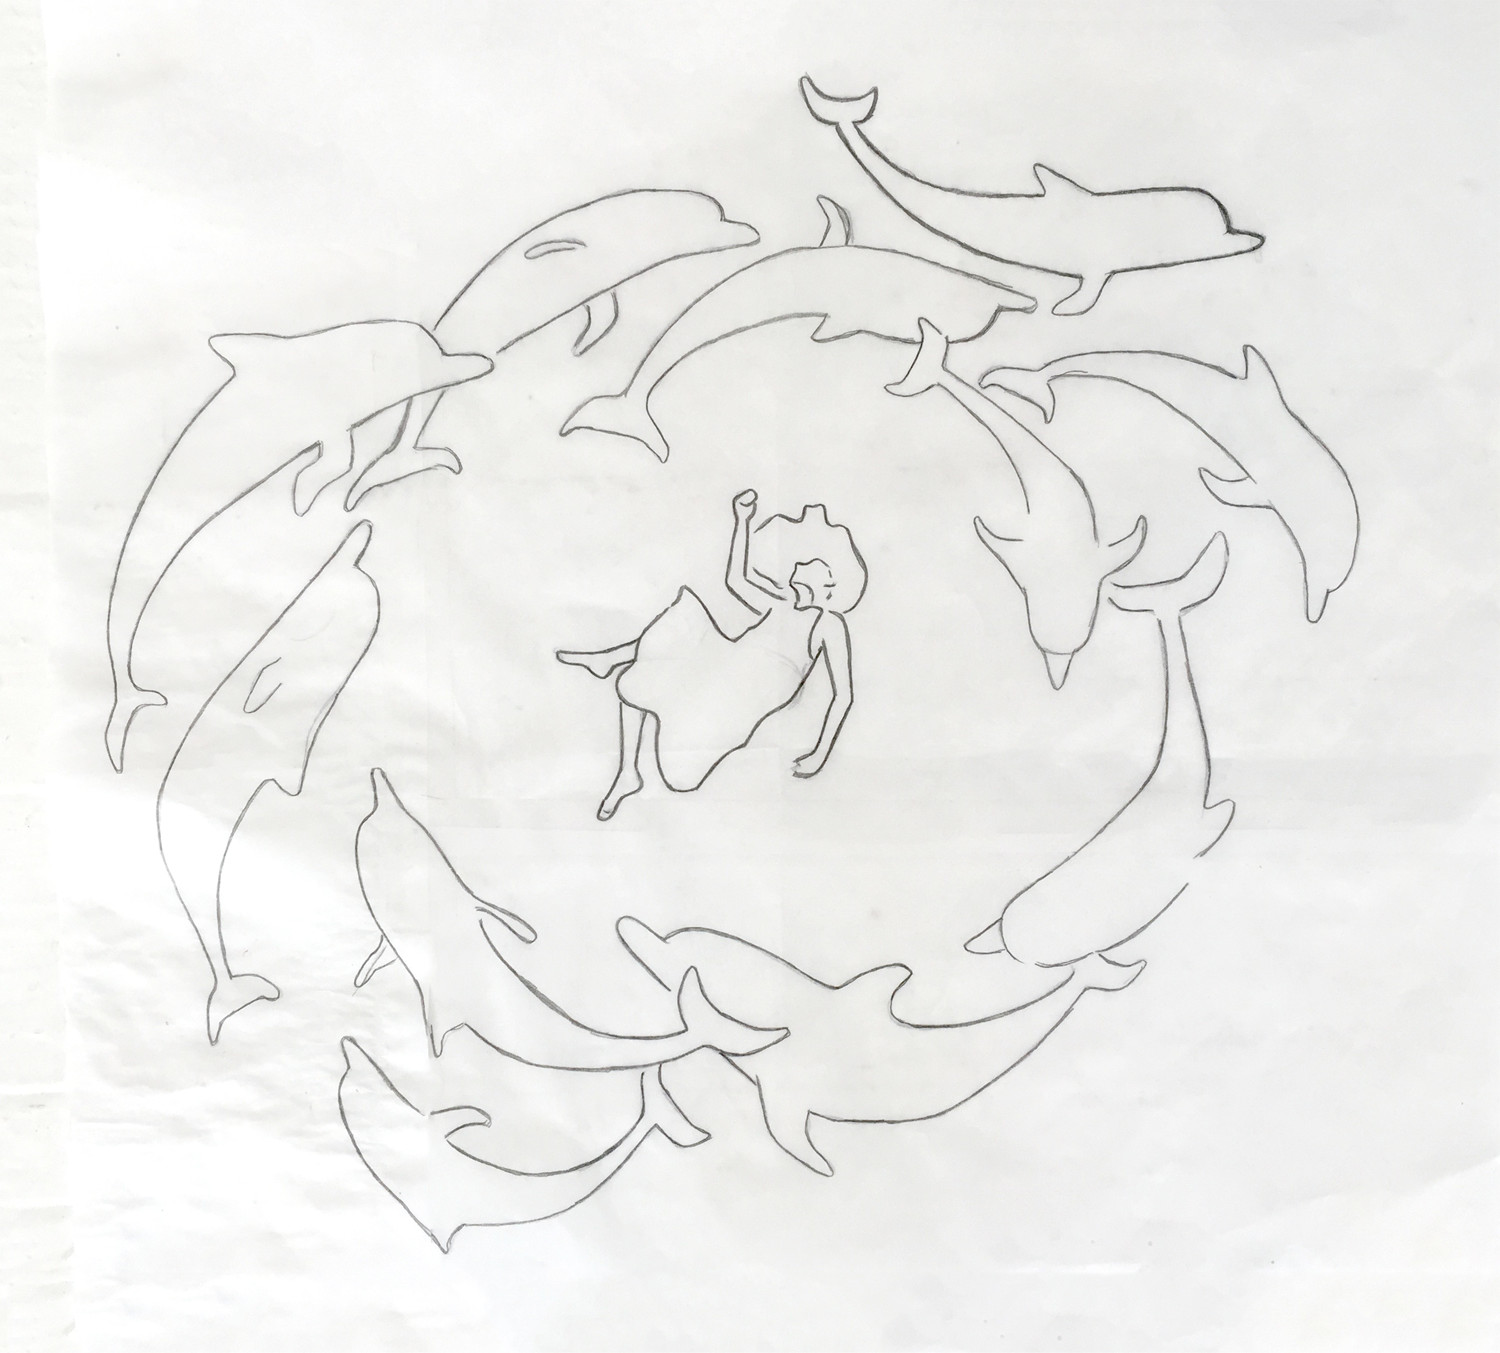 This is my more refined sketch on tracing paper (after a few thumb nails in my sketch book) I changed the direction of the dolphins when I realized the current they would make would motion her hair in the other direction.